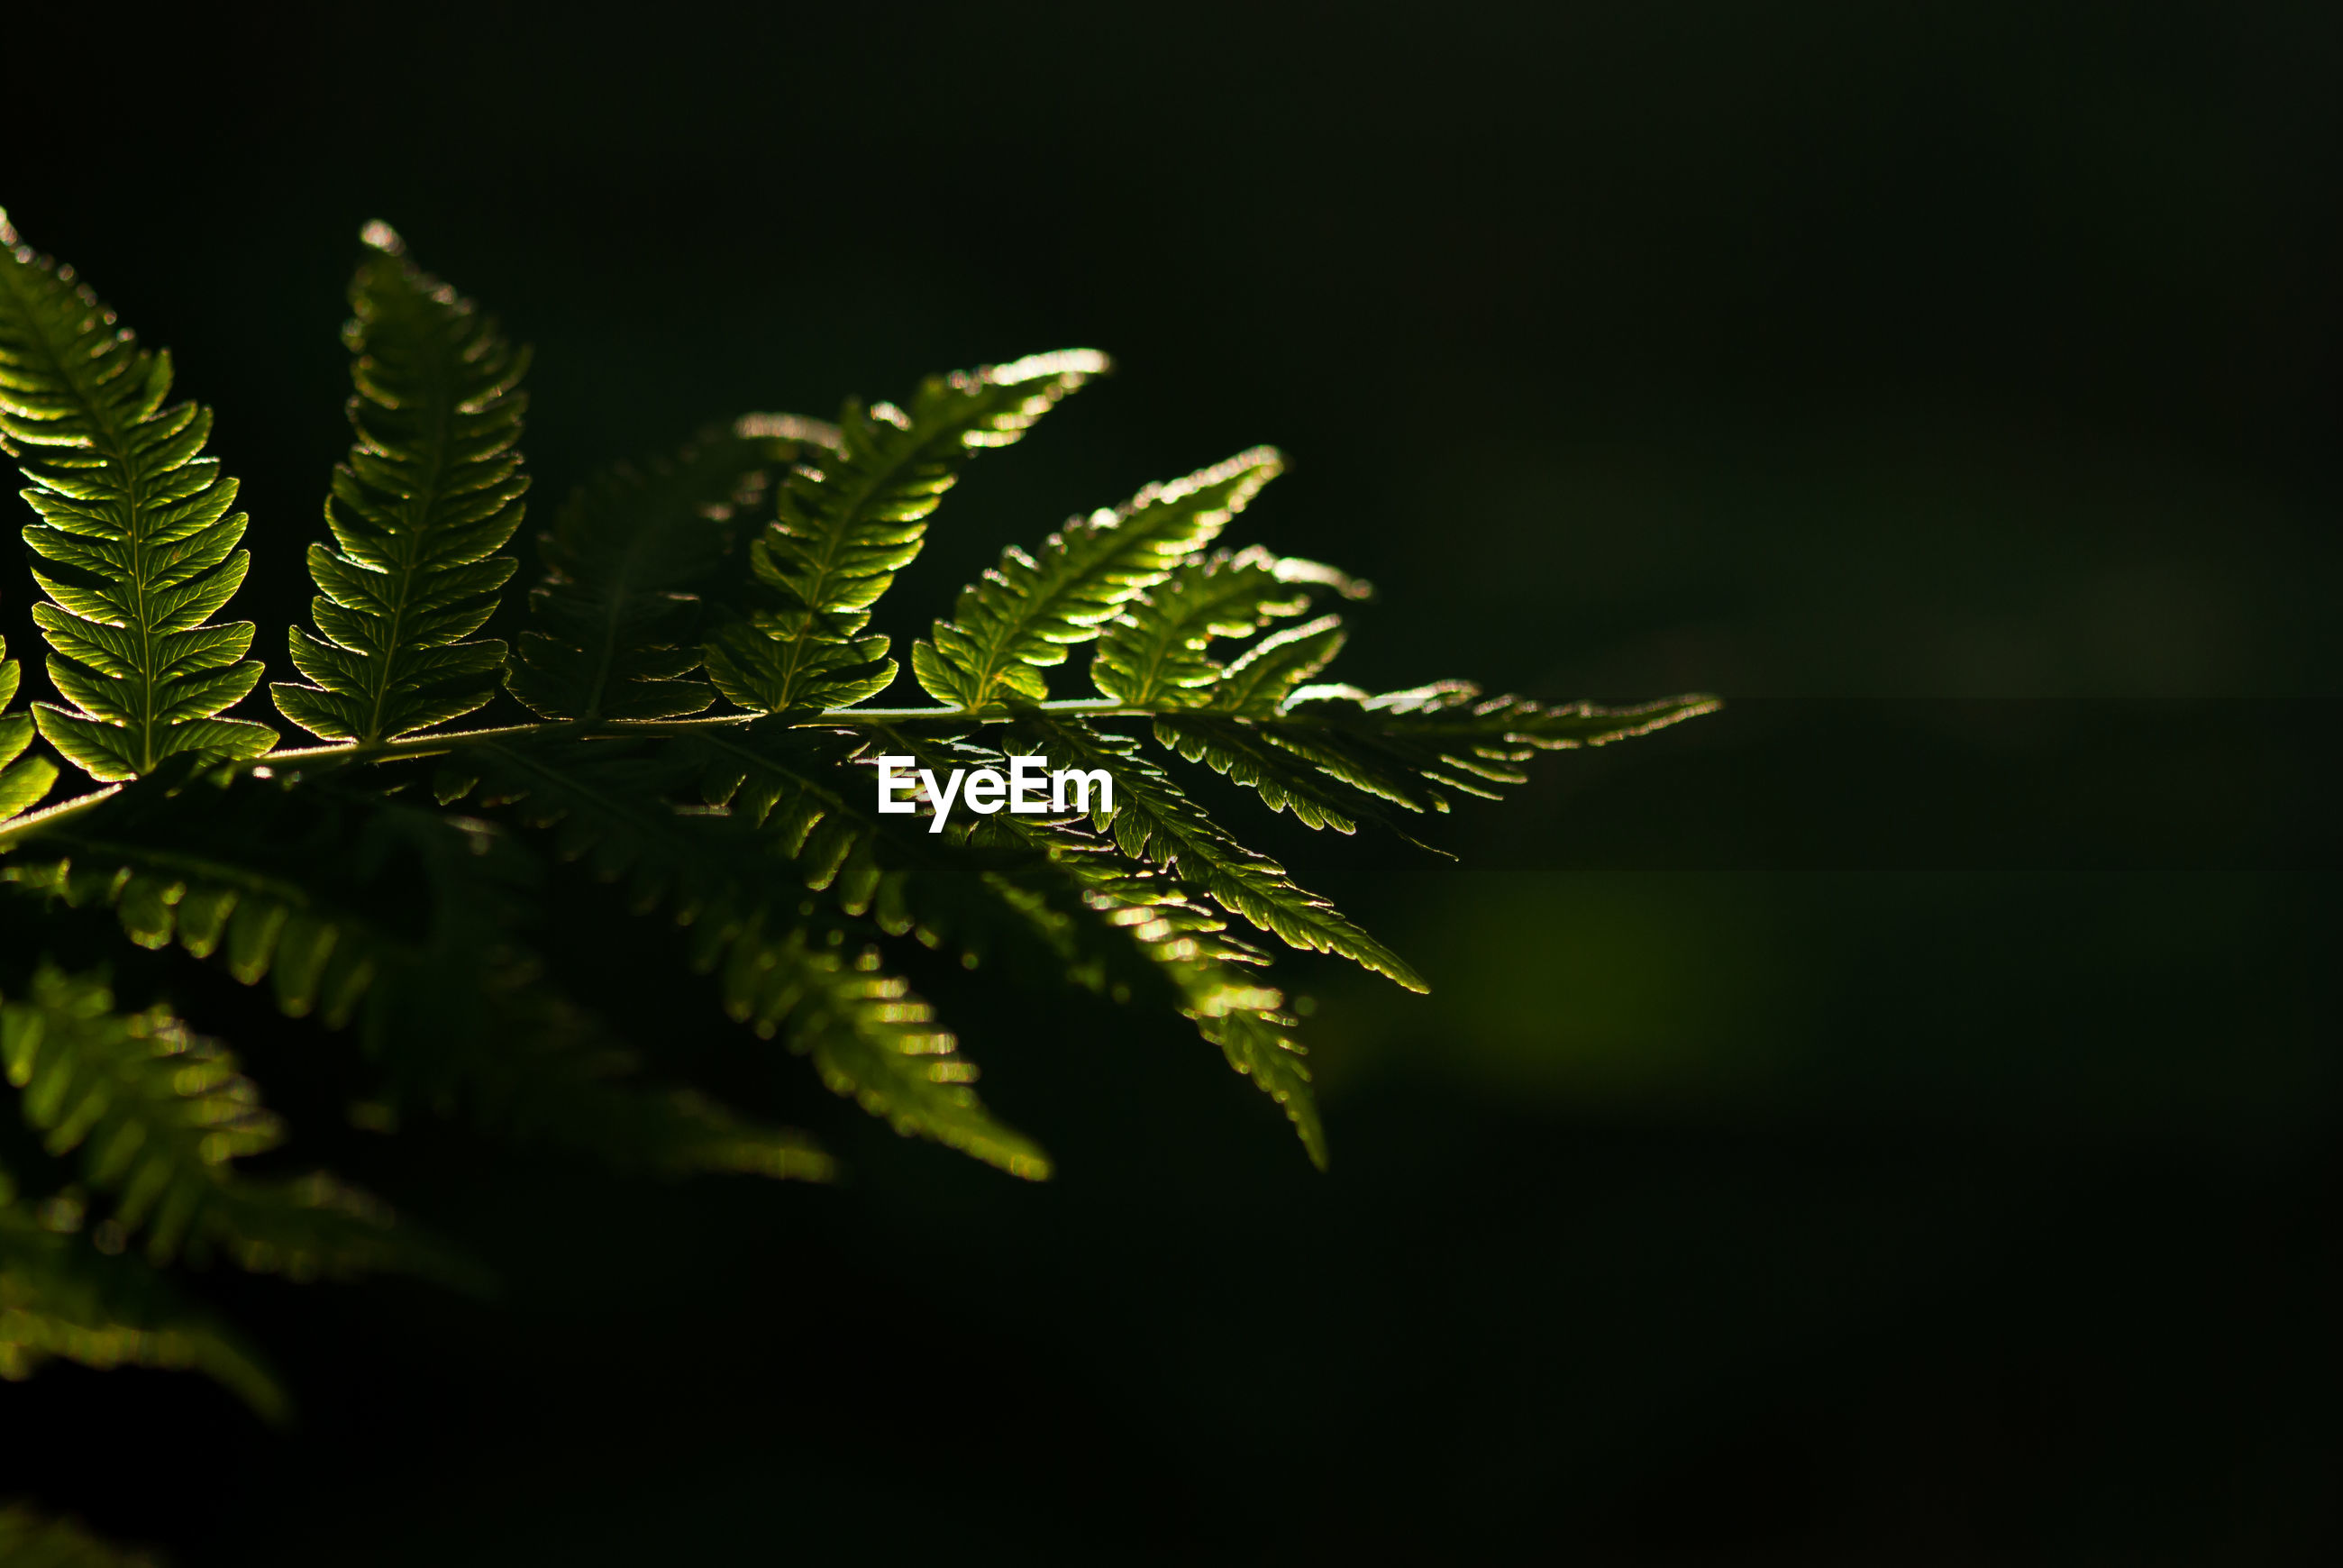 CLOSE-UP OF FERN LEAVES ON PLANT AGAINST BLACK BACKGROUND